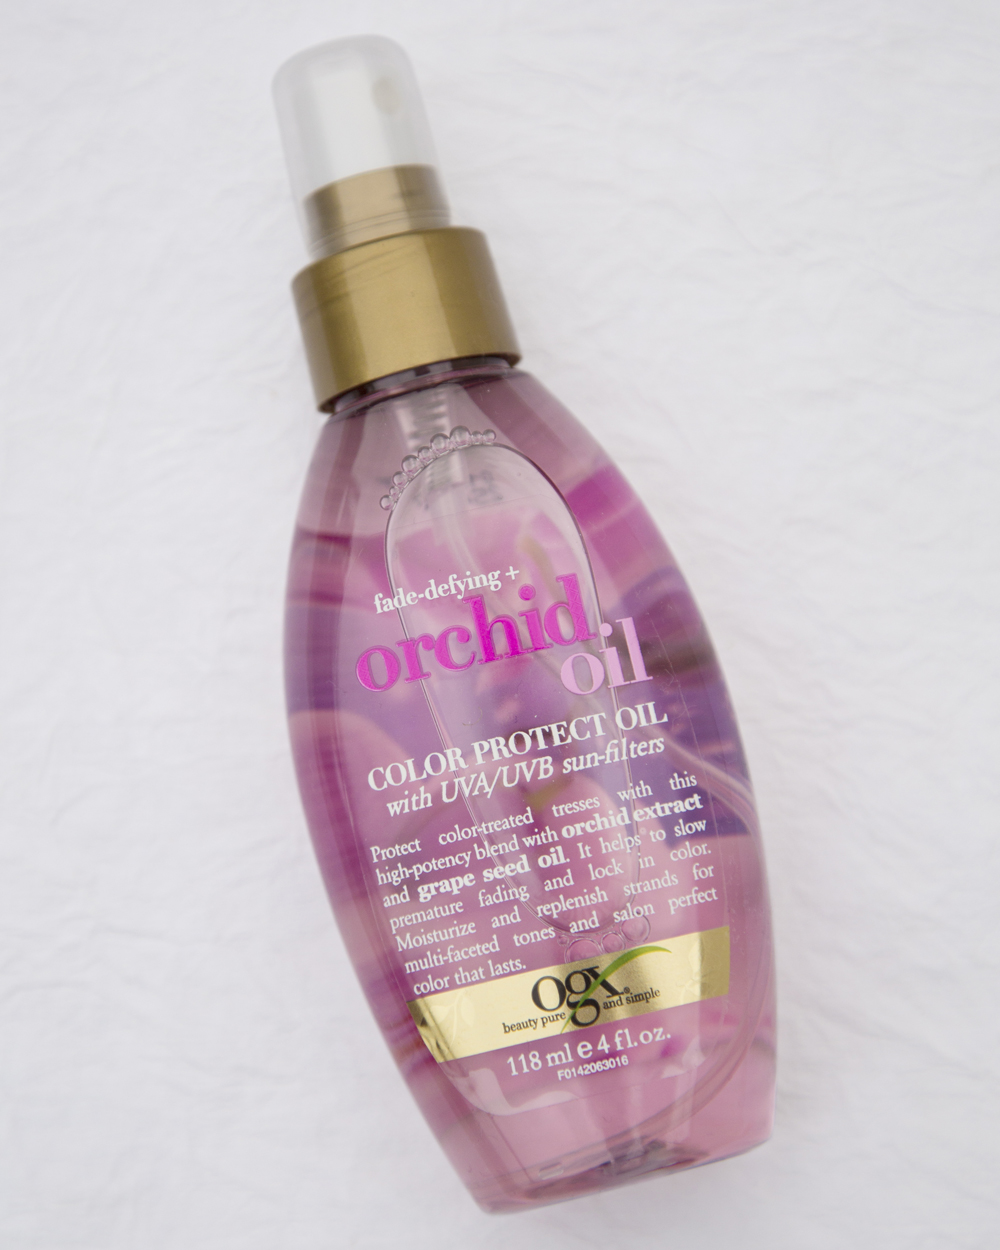 OGX Orchid Oil Color Protect Oil